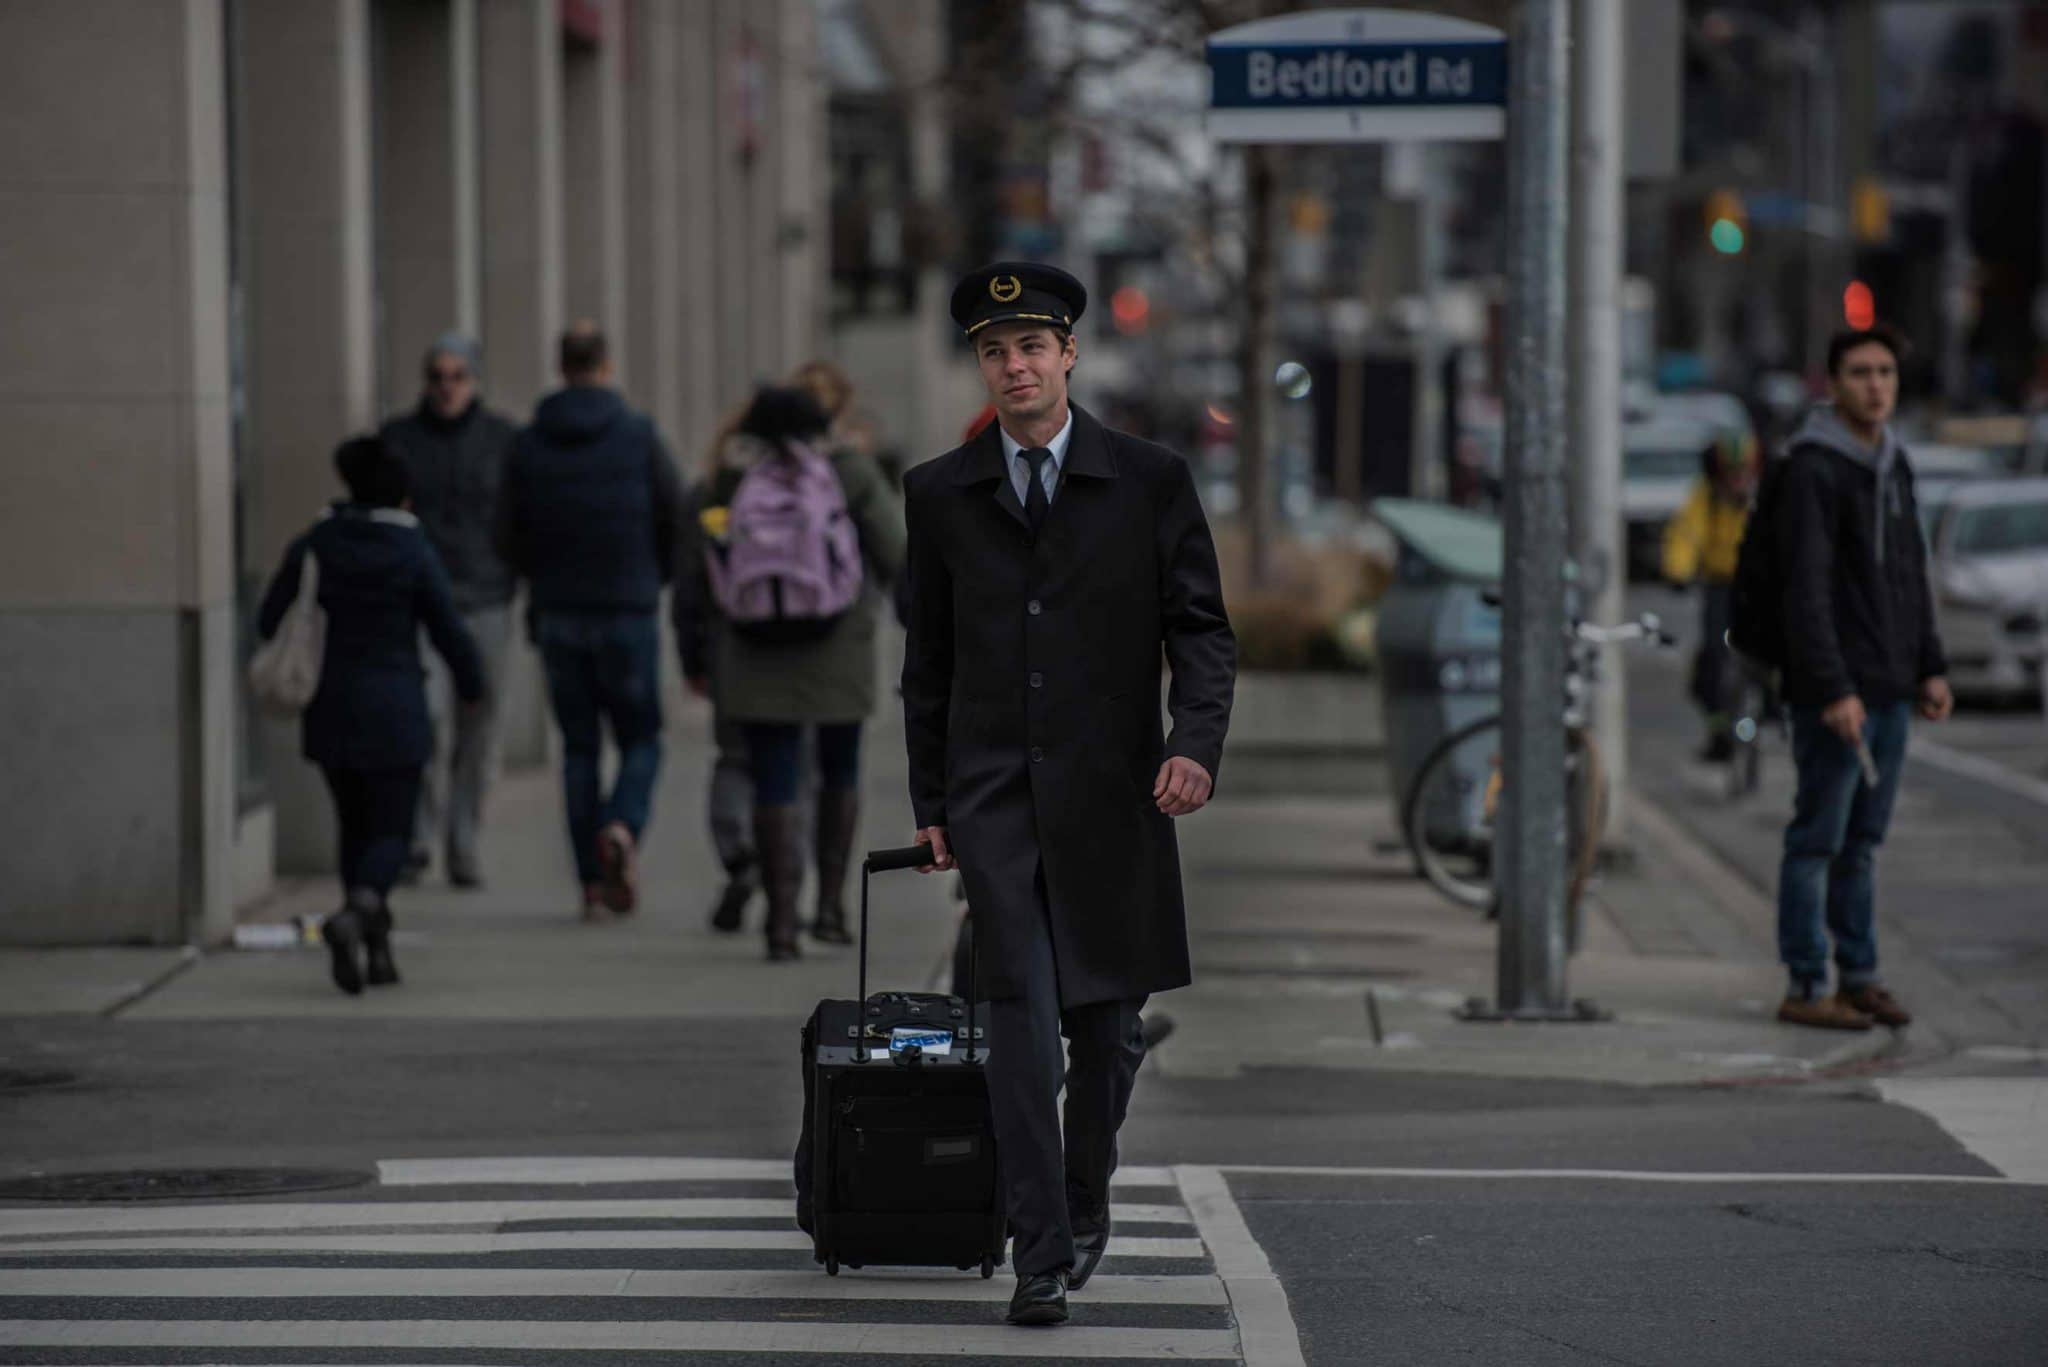 Pilot in uniform crosses the street with luggage.